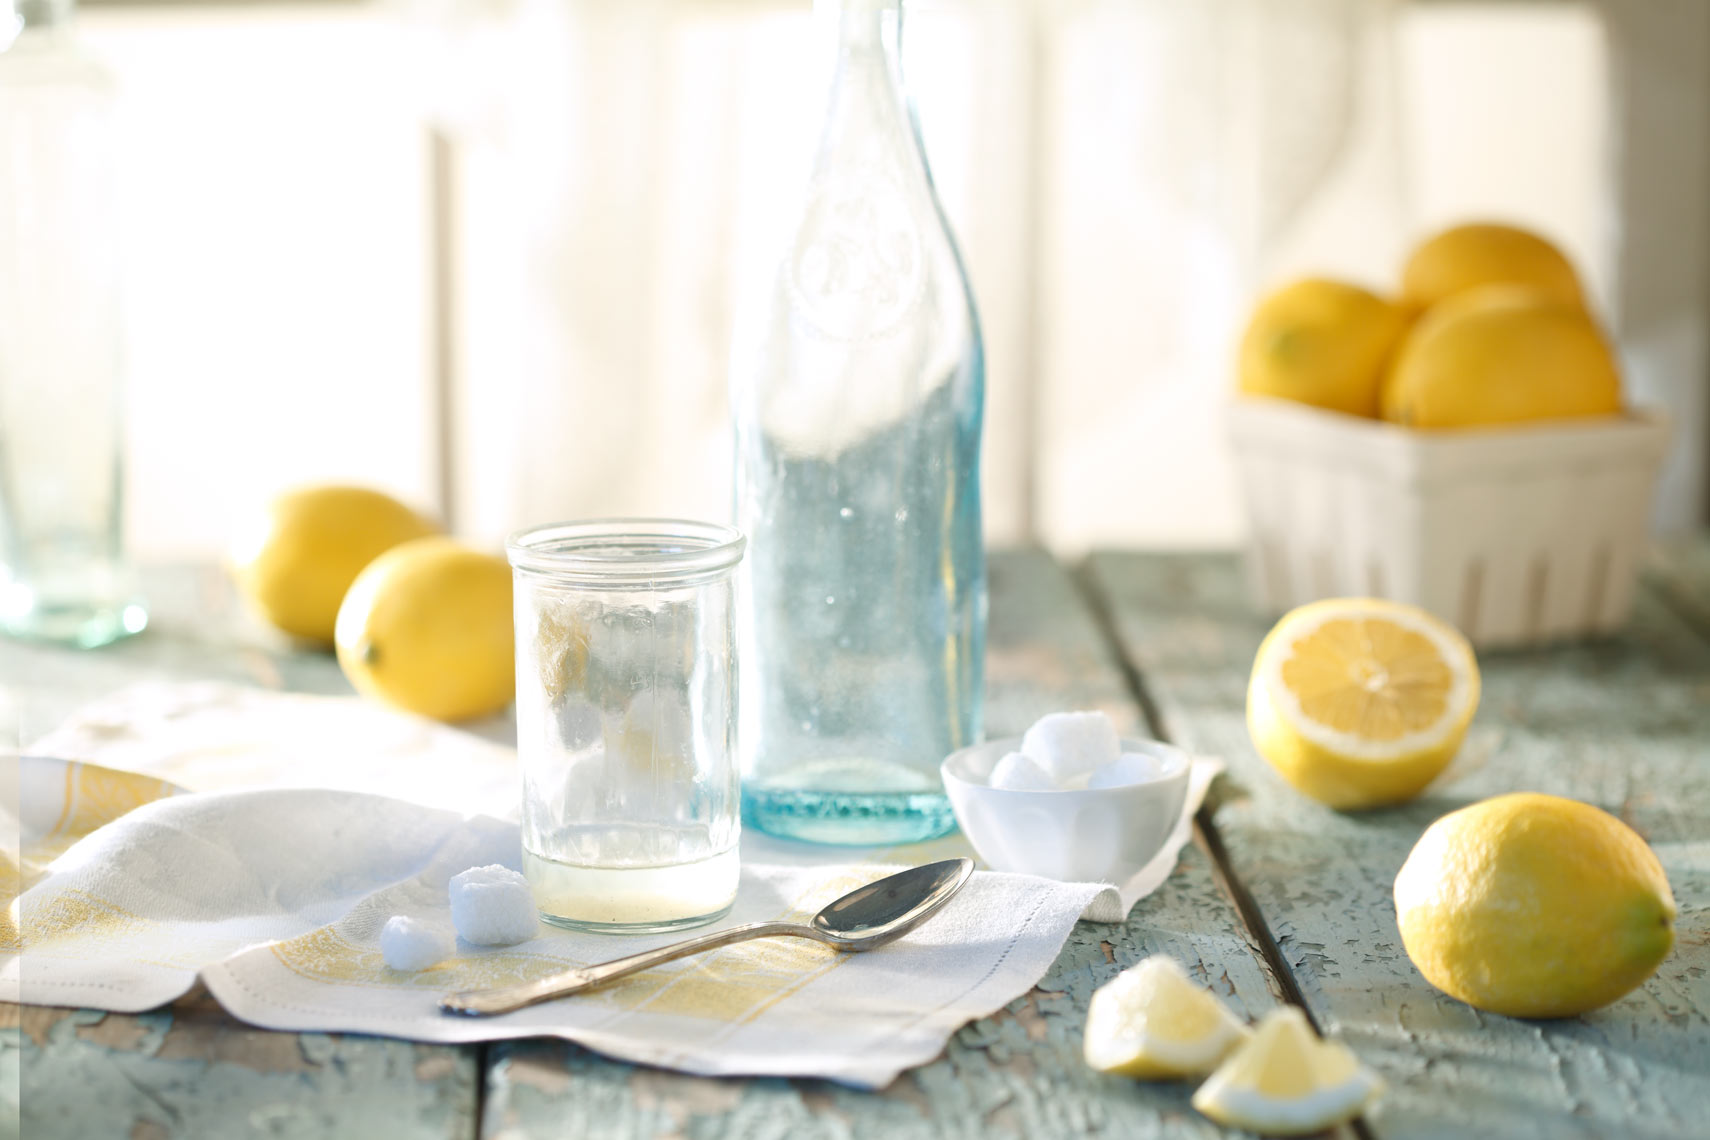 Lemon Bottle Still Life Food Beverage Photography- © Aristo Studios